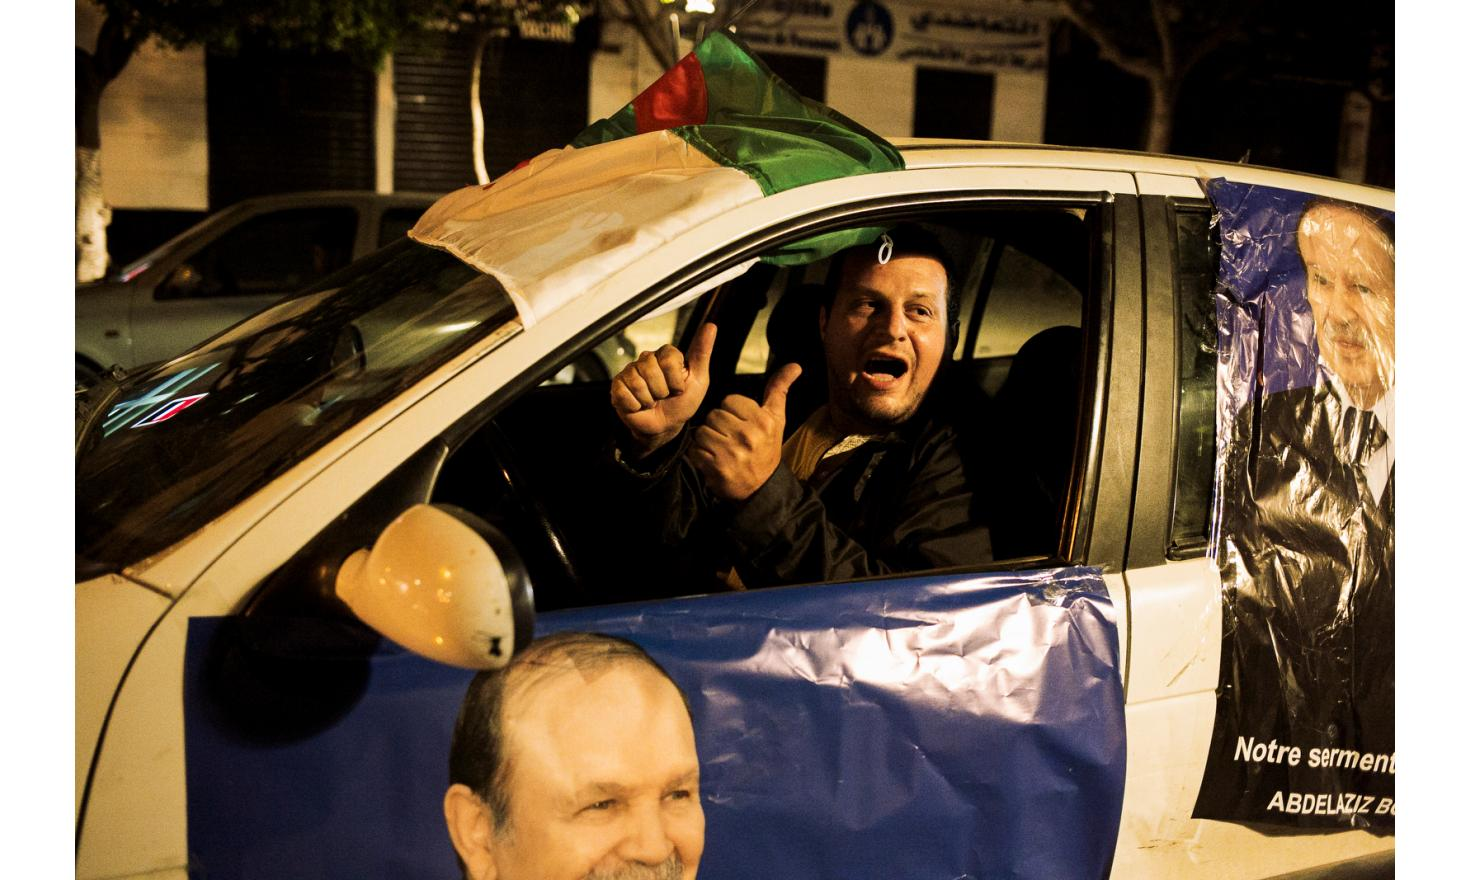 Bouteflika's supporters, in the streets of Algiers to celebrate the victory